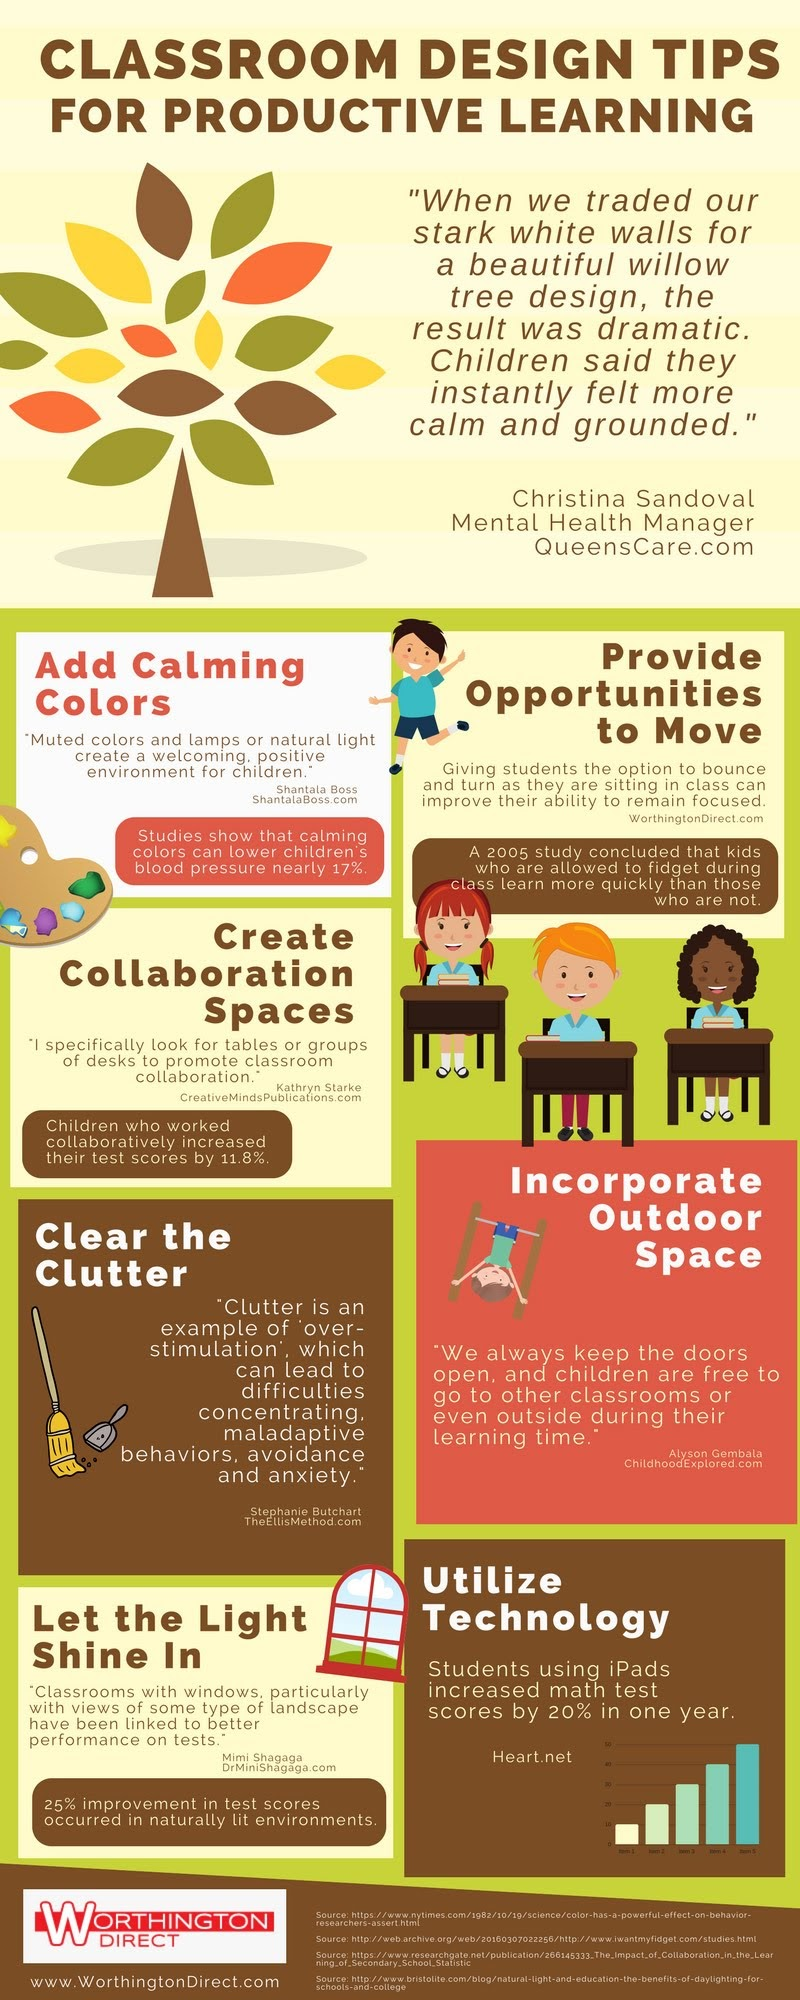 Classroom Design Effect On Learning : Classroom design tips for productive learning infographic